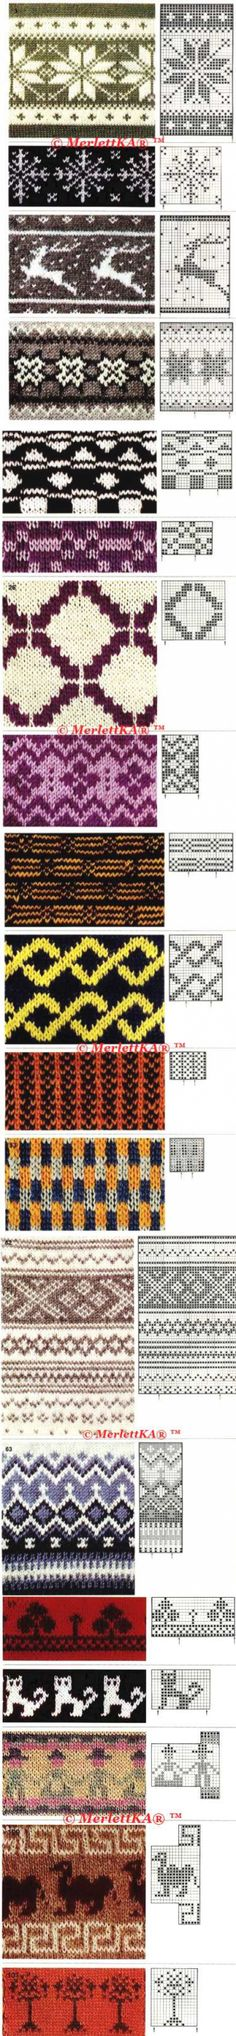 Knitting Patterns Techniques Jacquard does not happen much – for beads, knitting, weaving … Baby Sweater Knitting Pattern, Knitting Machine Patterns, Knitting Charts, Knitting Socks, Knitting Stitches, Knitting Patterns, Crochet Patterns, Fair Isle Chart, Fair Isle Pattern